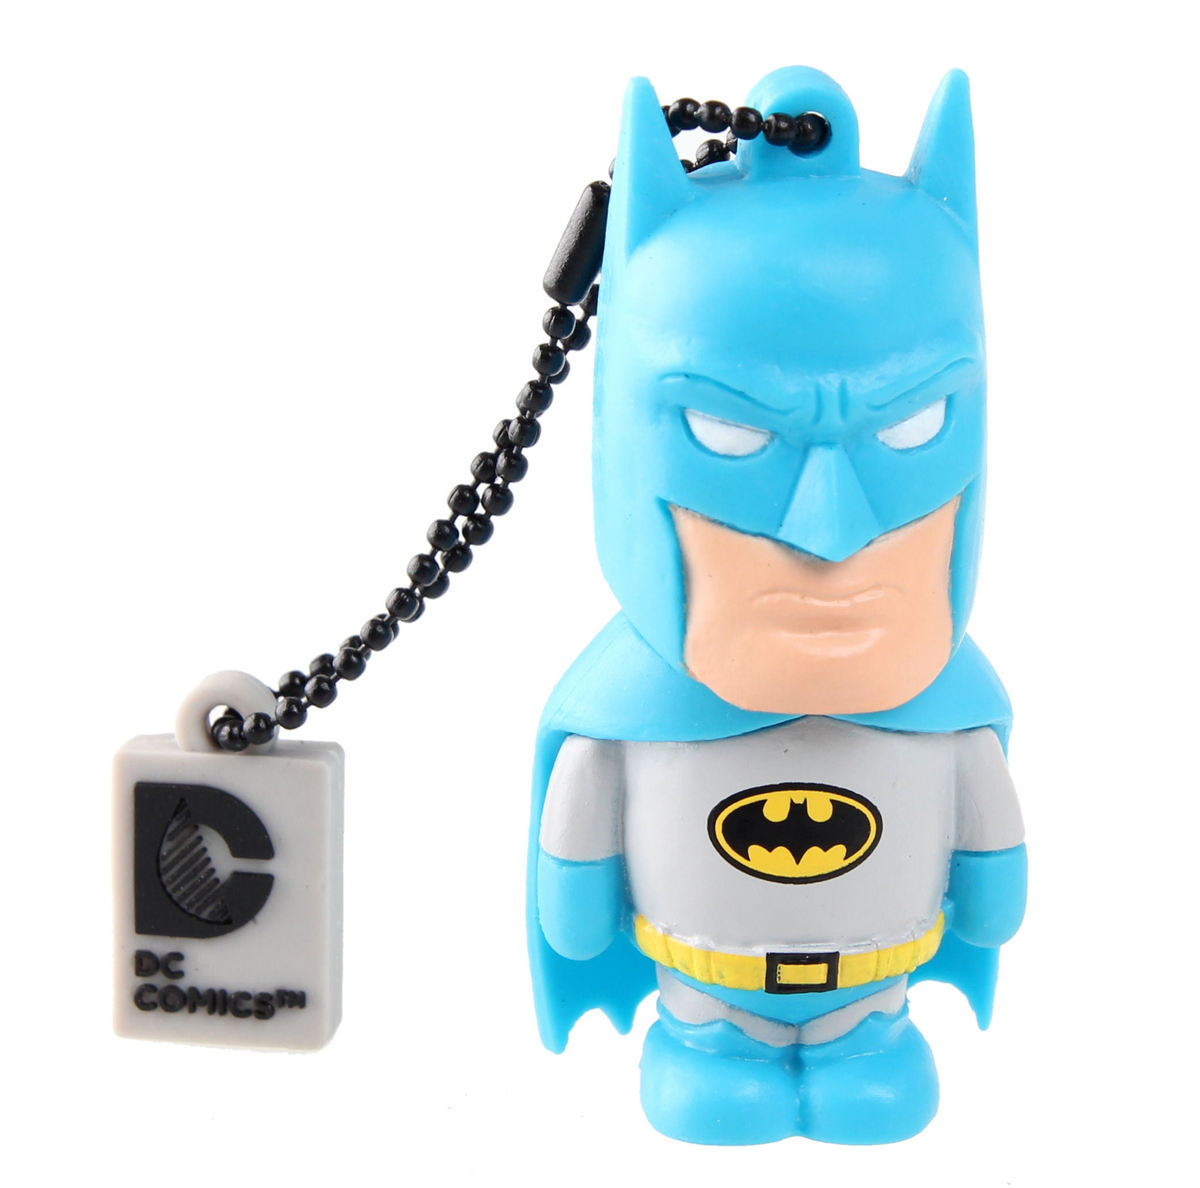 flash disk 16 GB - DC Comics - Batman - FD031502